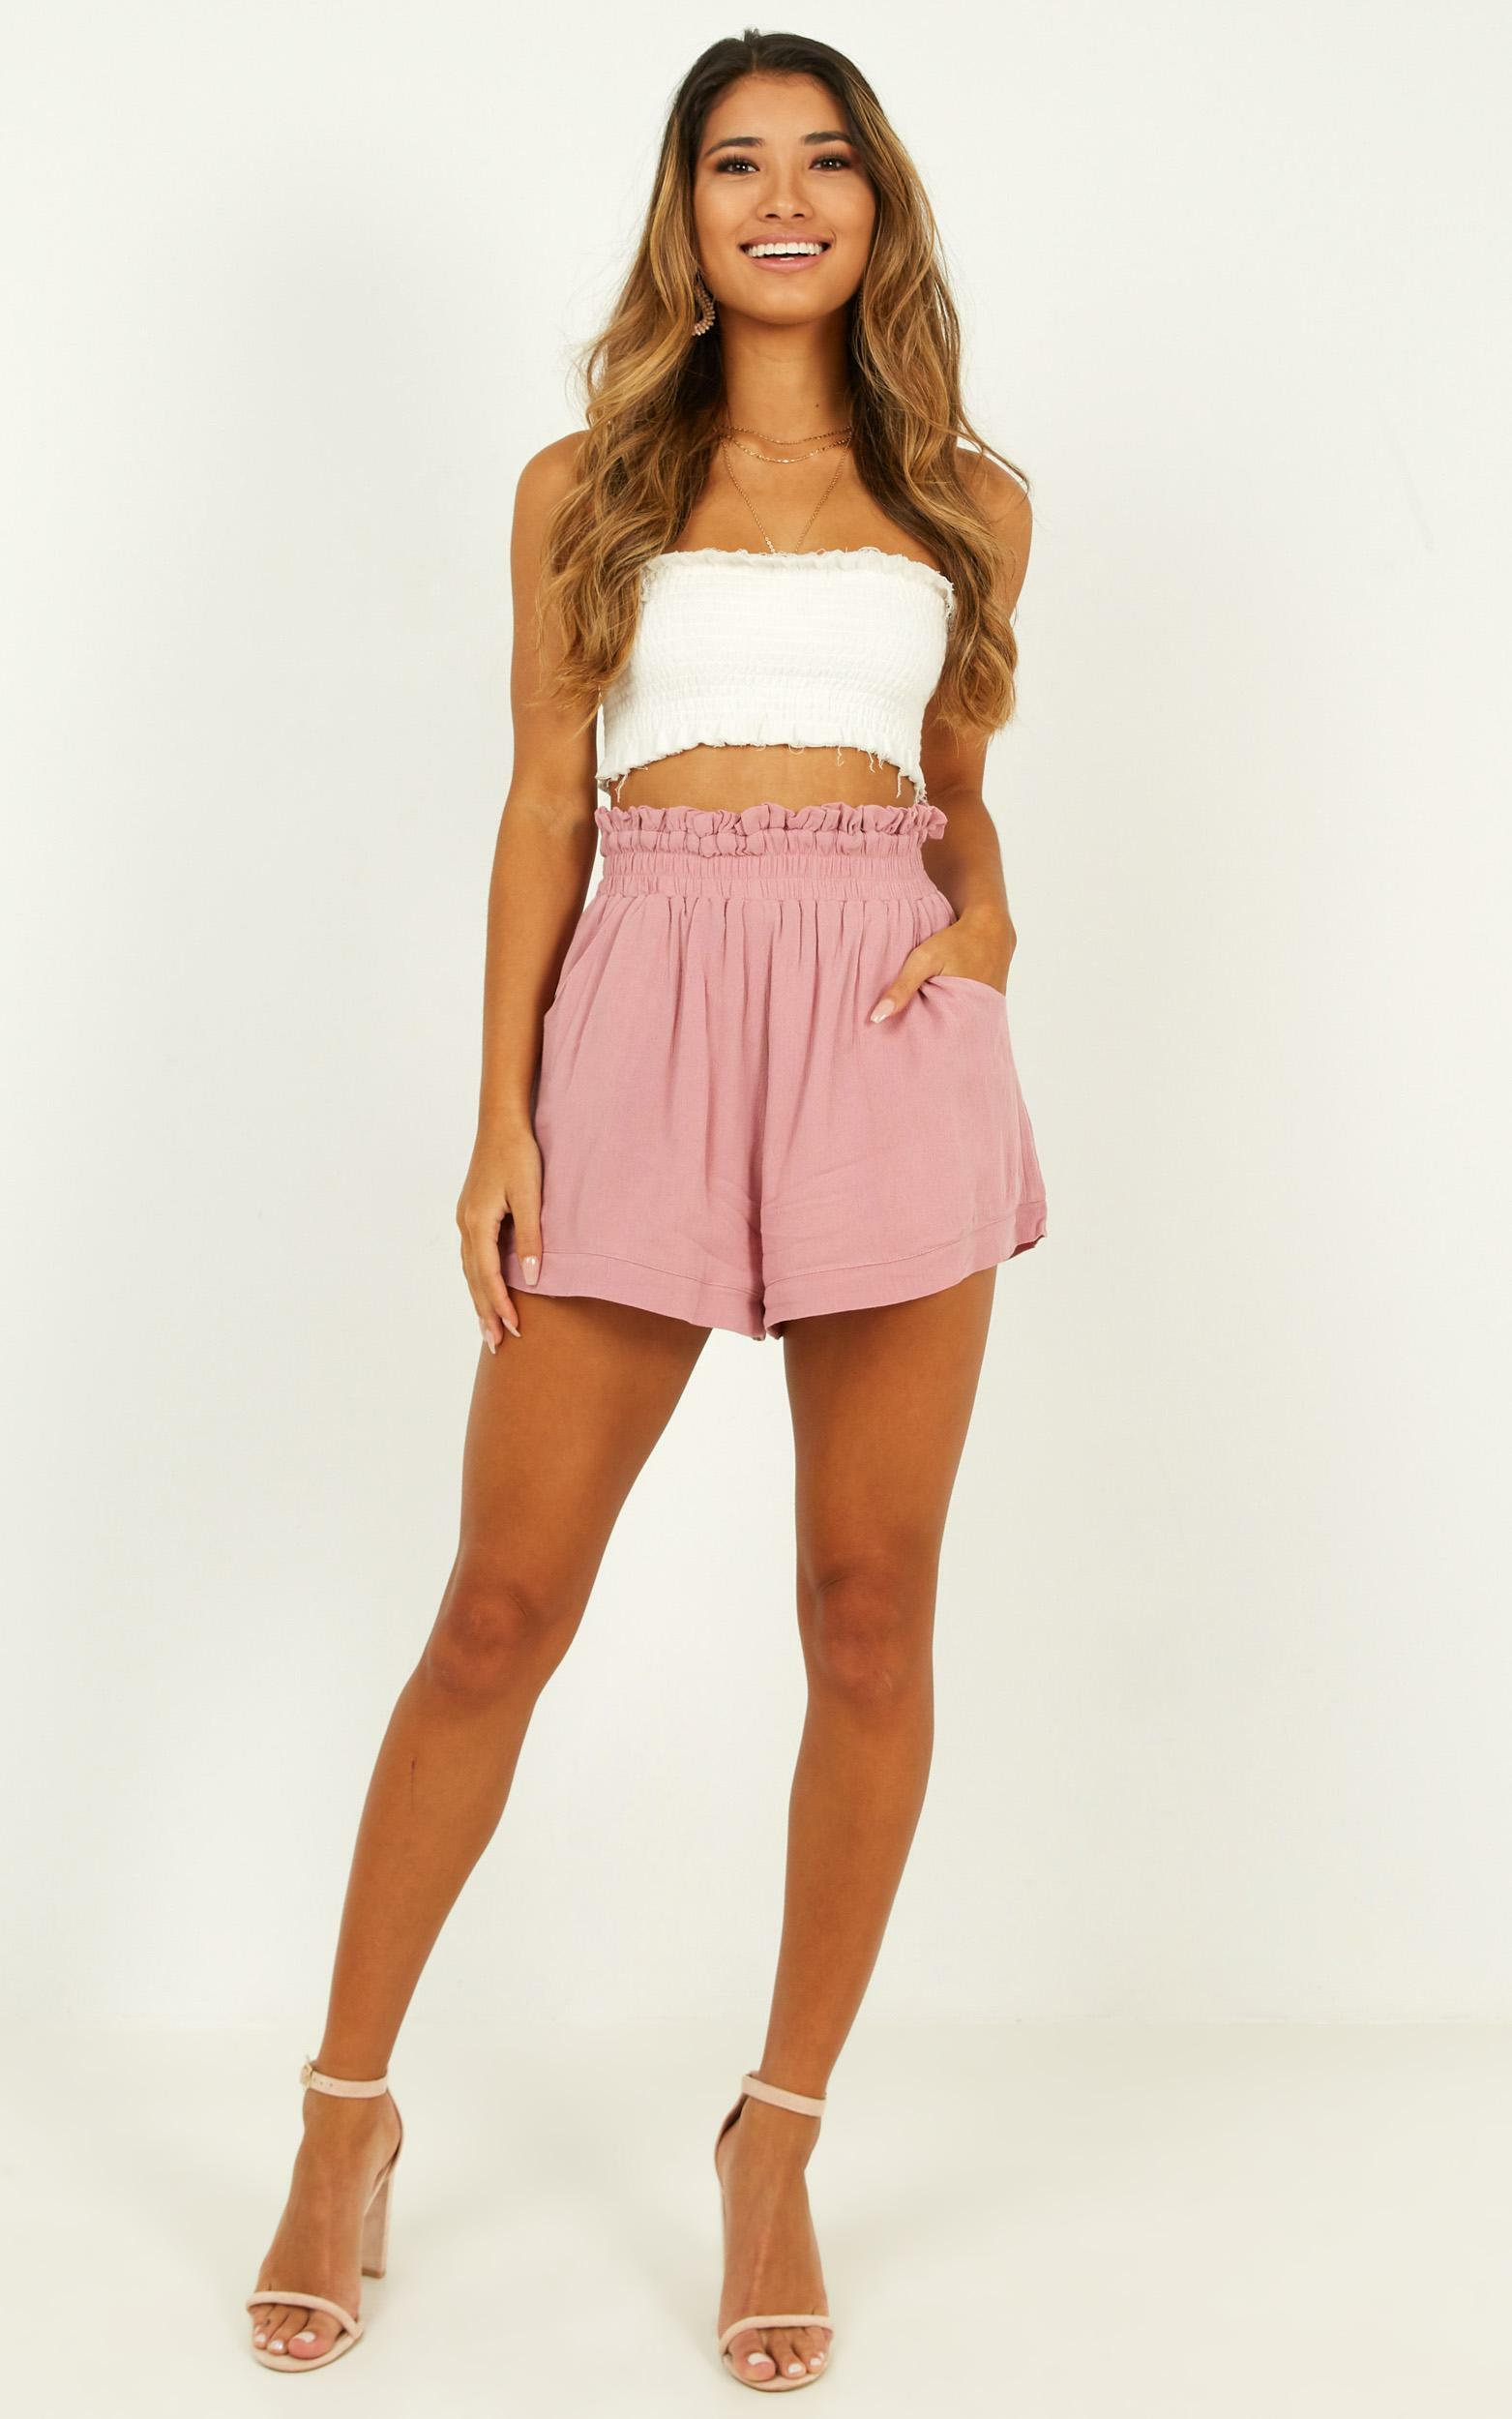 Beach Days Shorts In mauve - 14 (XL), Mauve, hi-res image number null